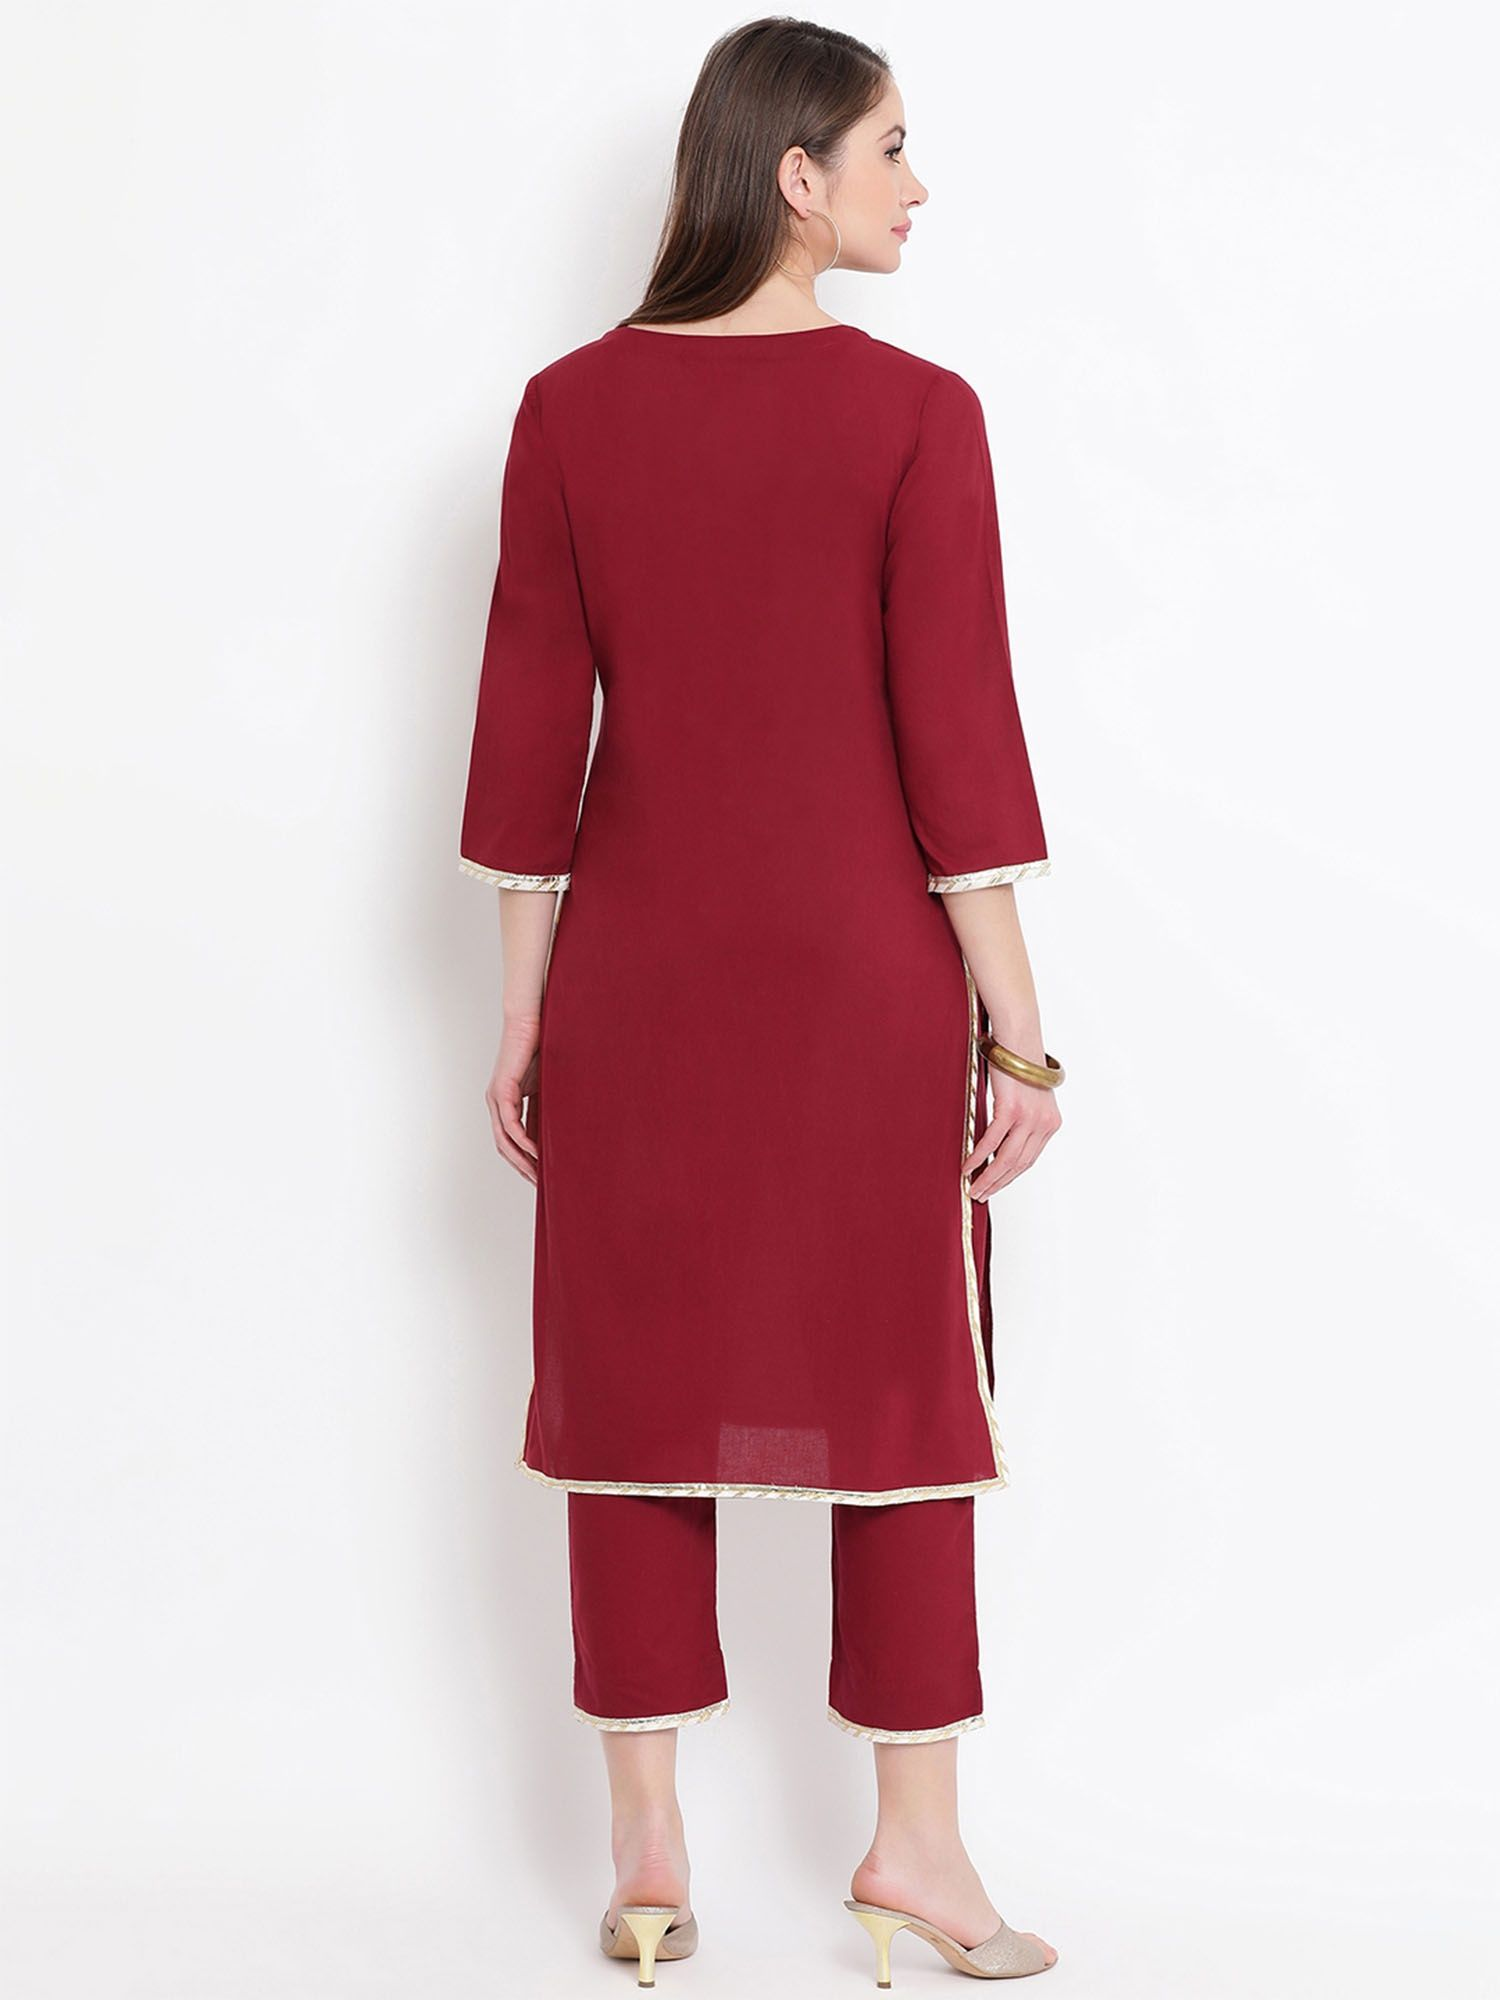 8636e57031 Fabnest Kurtis Kurtas and Tunics : Buy Fabnest Maroon Gota Cotton ...